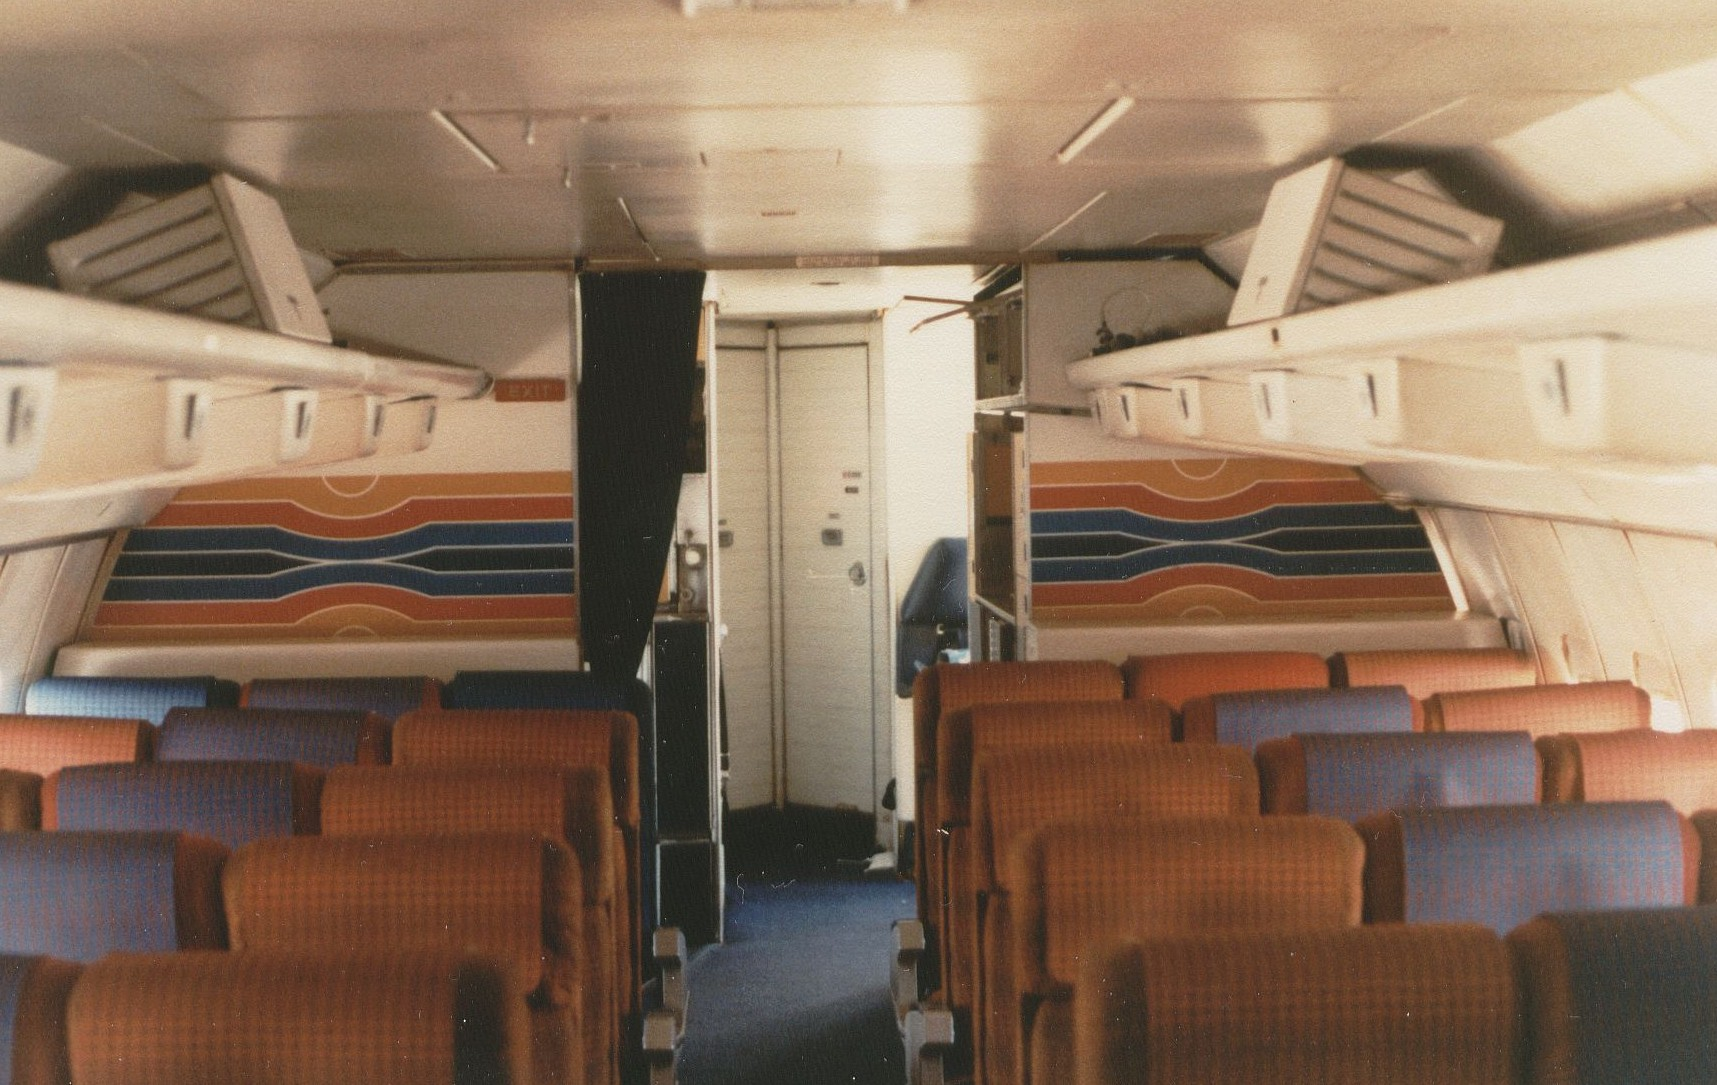 August 1981 The artwork on the rear bulkheads in the economy cabin of a Pan Am 707 were a stylized version of the famous Pan Am globe logo.